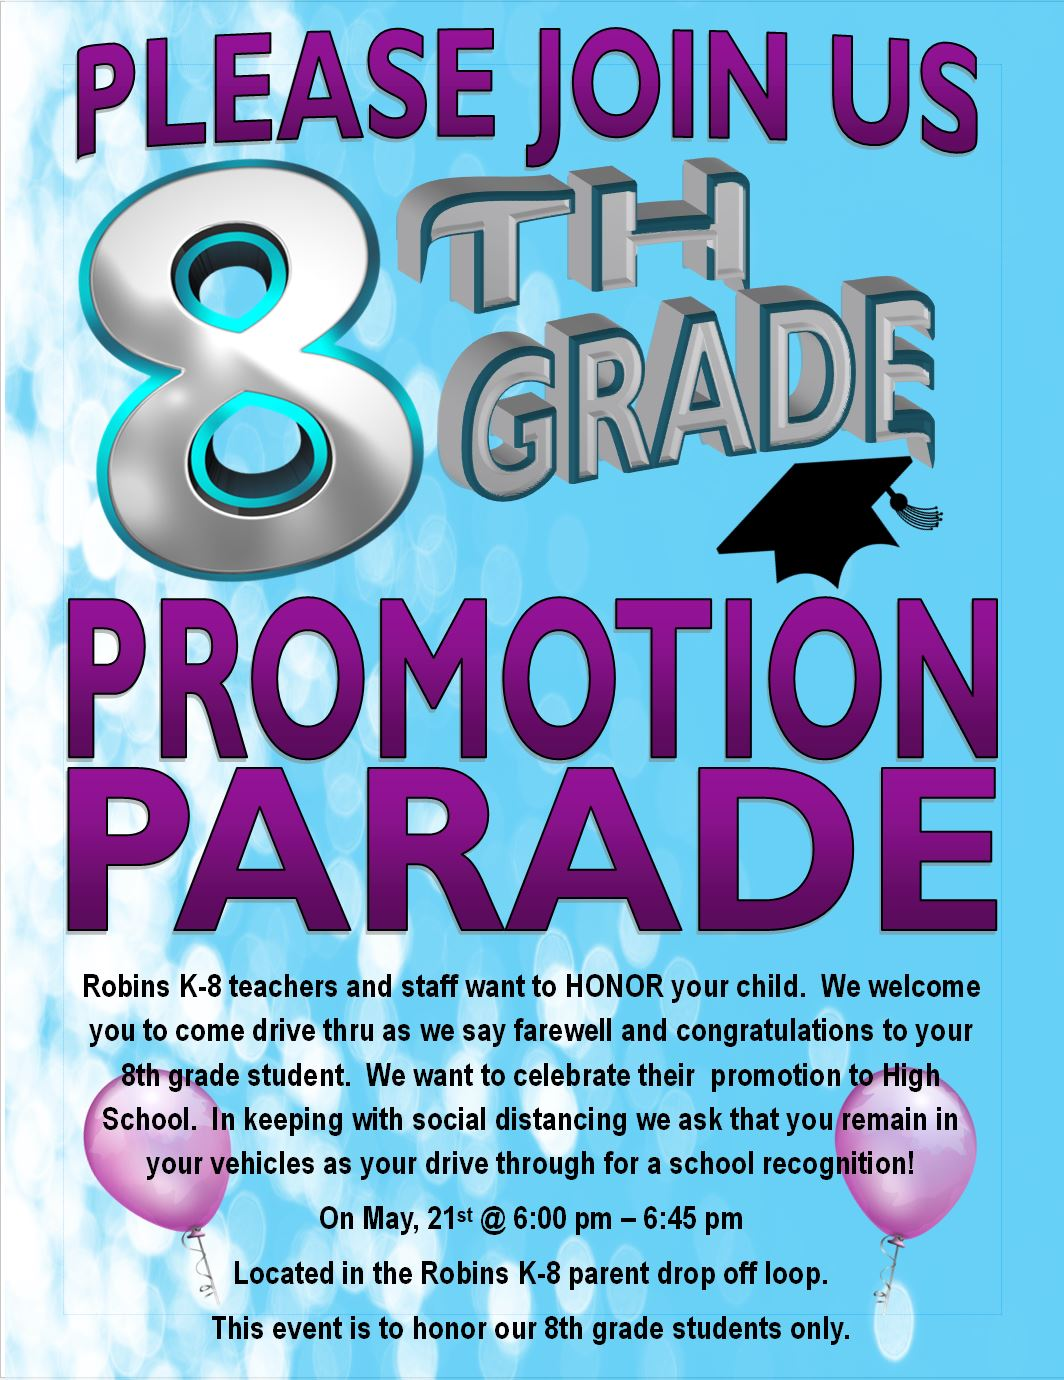 Please join us for the 8th grade promotion parade. Robins K-8 teachers and staff want to HONOR your child.  We welcome you to come drive thru as we say farewell and congratulations to your  8th grade student.  We want to celebrate their  promotion to High School.  In keeping with social distancing we ask that you remain in your vehicles as your drive through for a school recognition! On May, 21st @ 6:00 pm – 6:45 pm  Located in the Robins K-8 parent drop off loop.   This event is to honor our 8th grade students only.